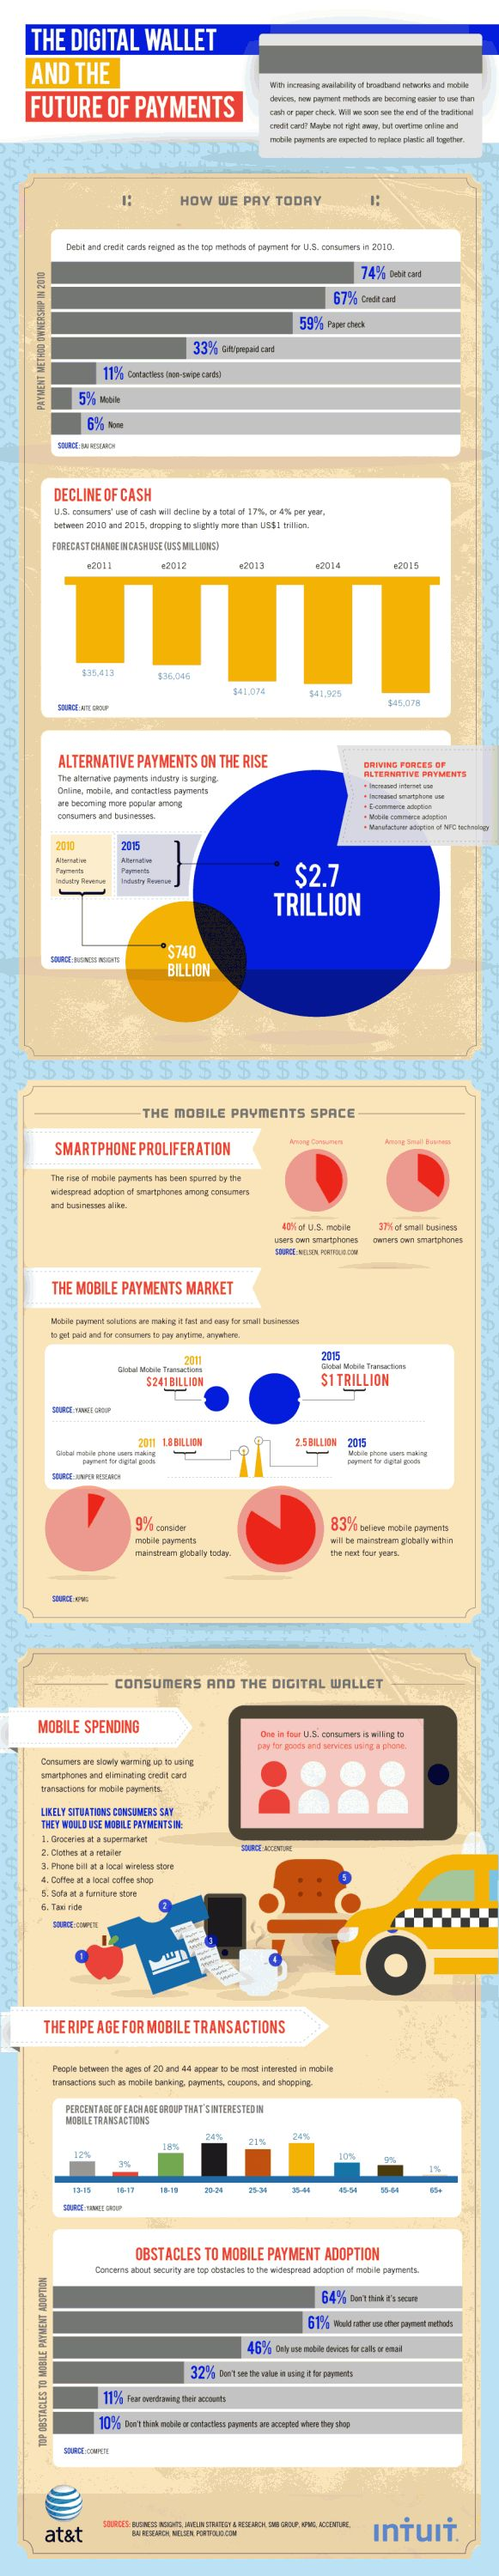 Mobile payments are on fire today, where will they be in 2015 (infographic)